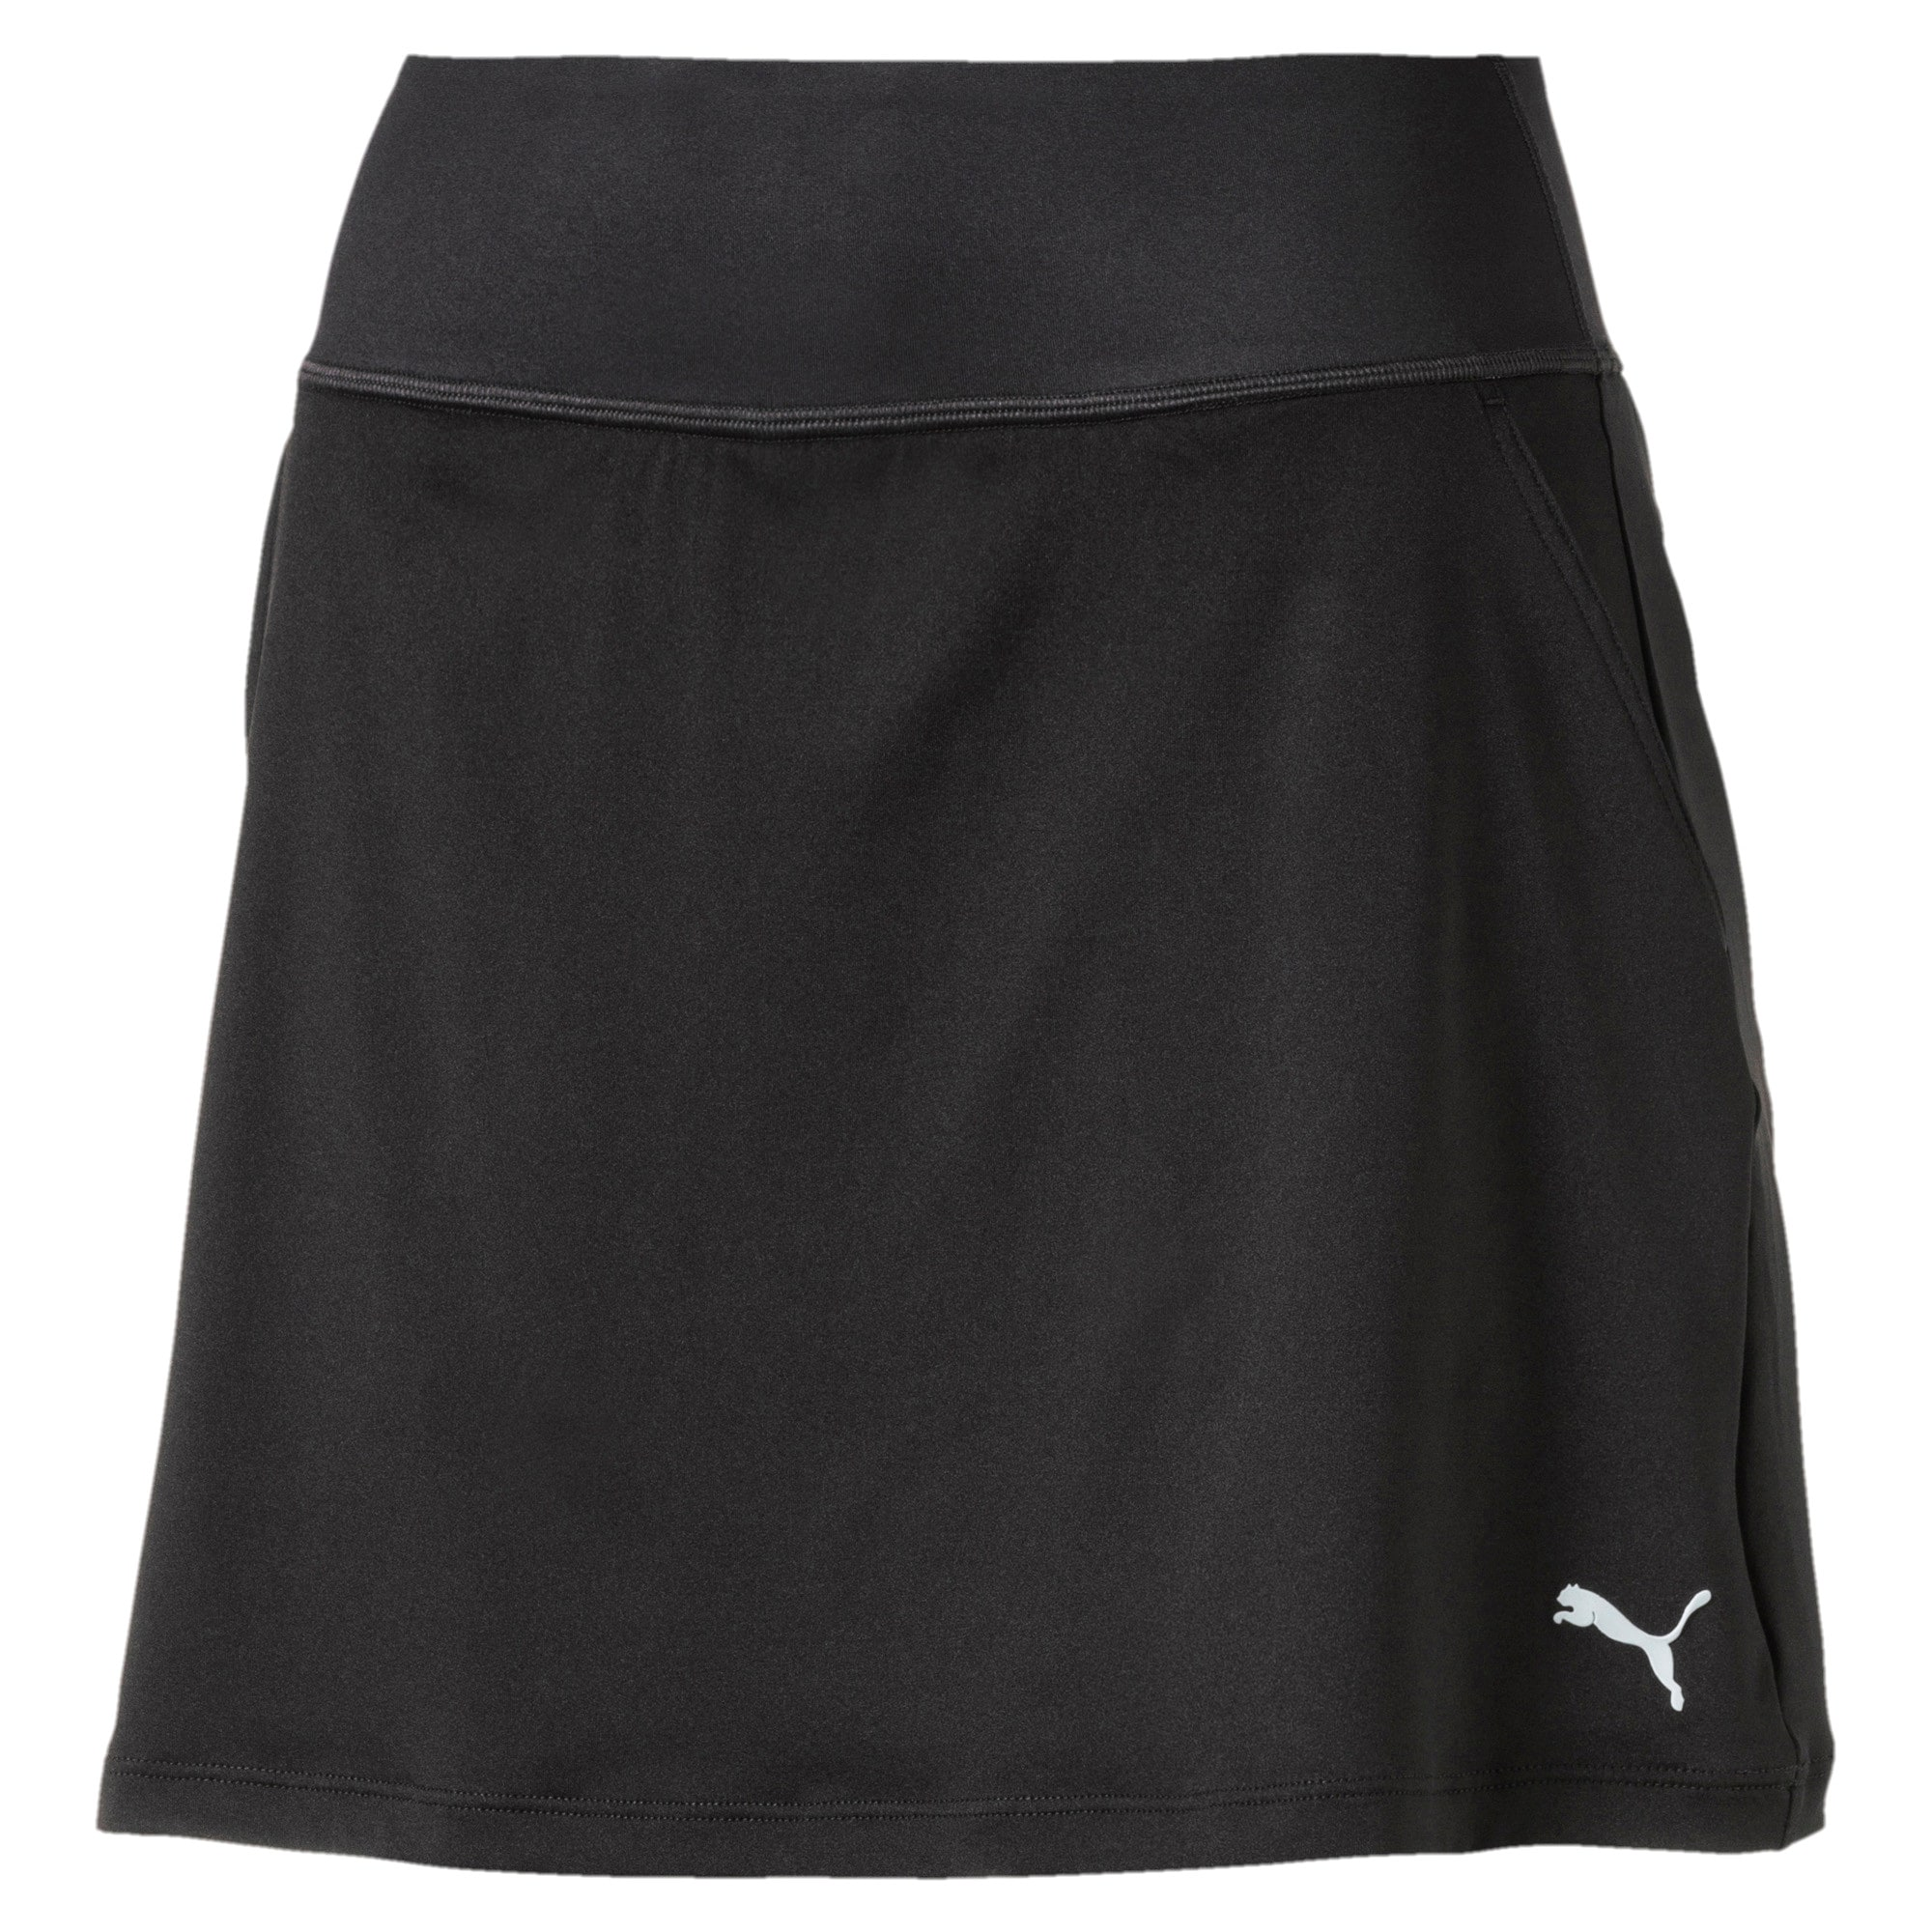 Thumbnail 4 of Golf Women's PWRSHAPE Solid Knit Skirt, Puma Black, medium